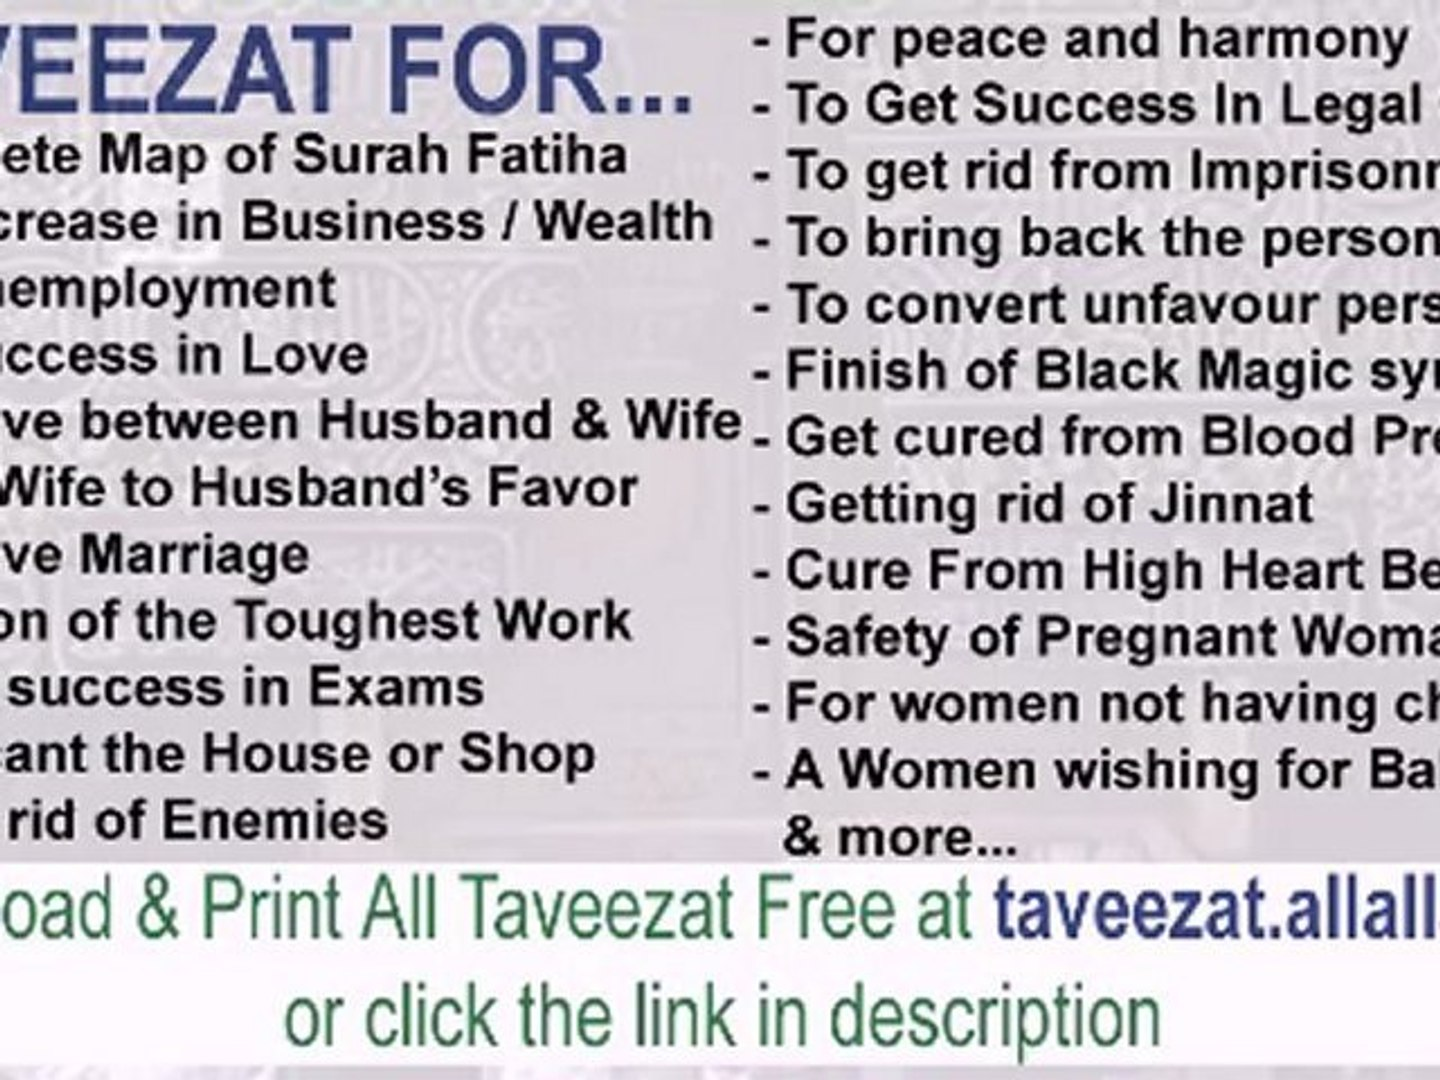 WAZAEEF FOR YOUR DAILY LIFE PROBLEMS, JOB, HEALTH, MARRIAGE, CHILD, BLACKMAGIC, LOVE, ETC.